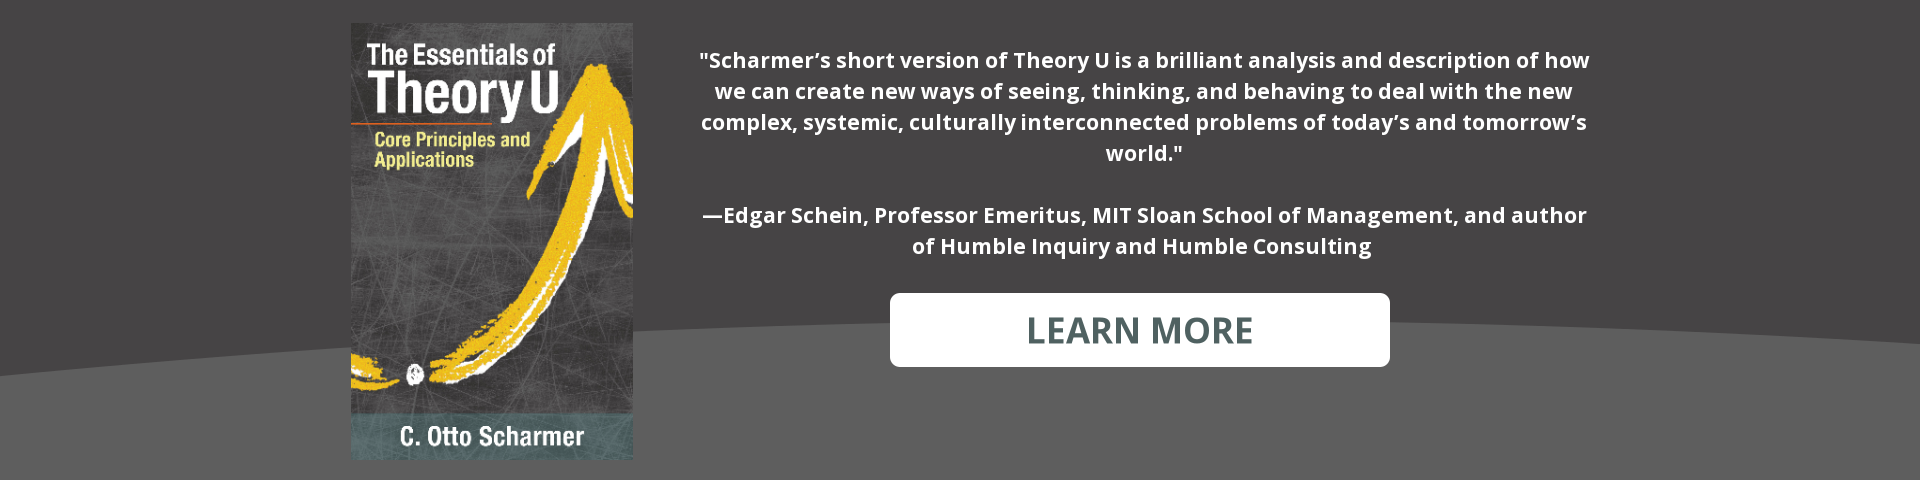 The Essentials of Theory U by Otto Scharmer